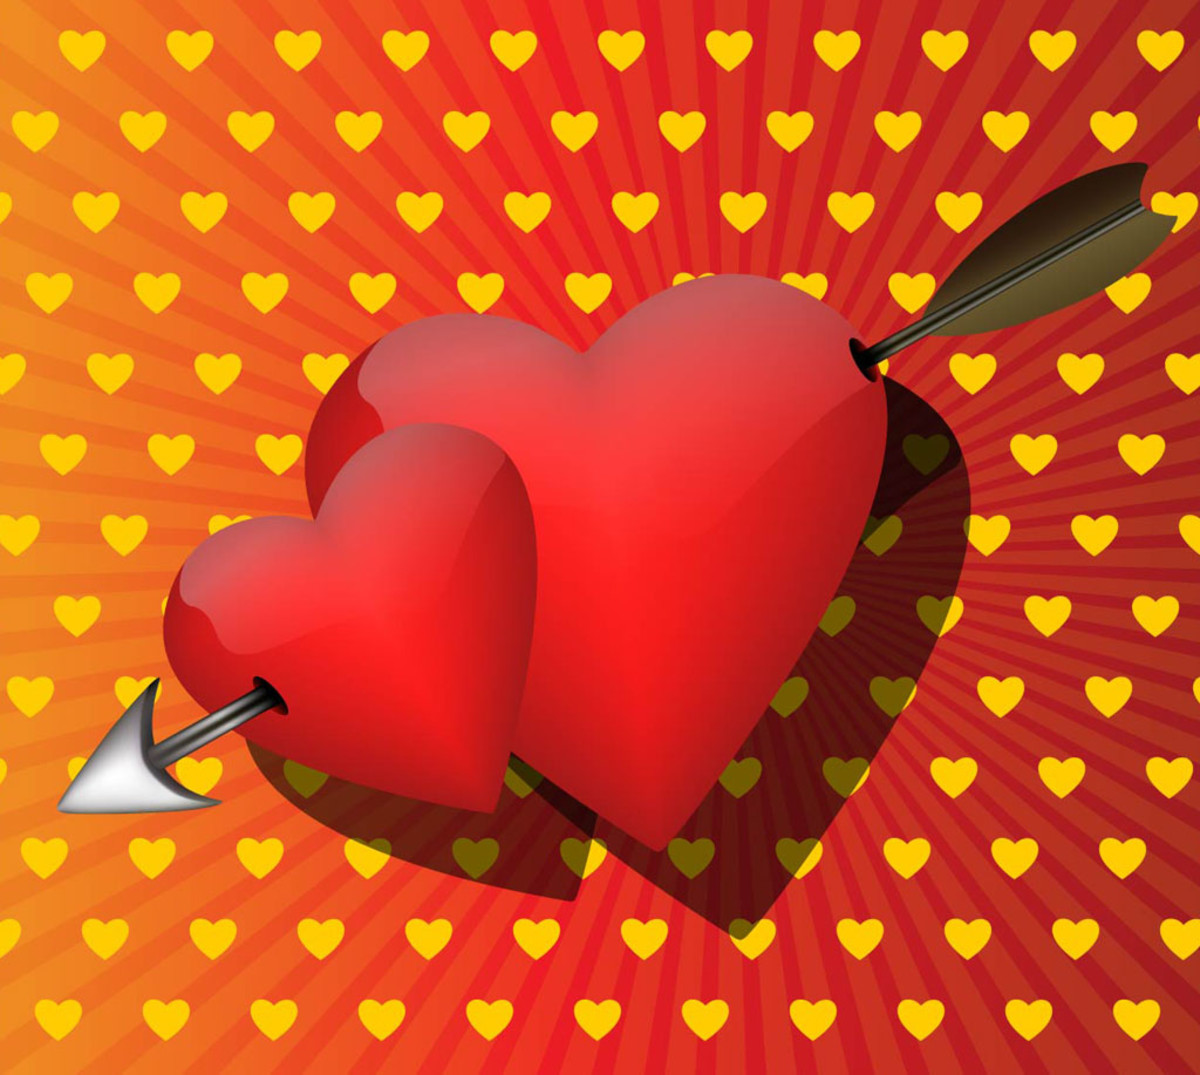 Red Hearts with Arrow Picture